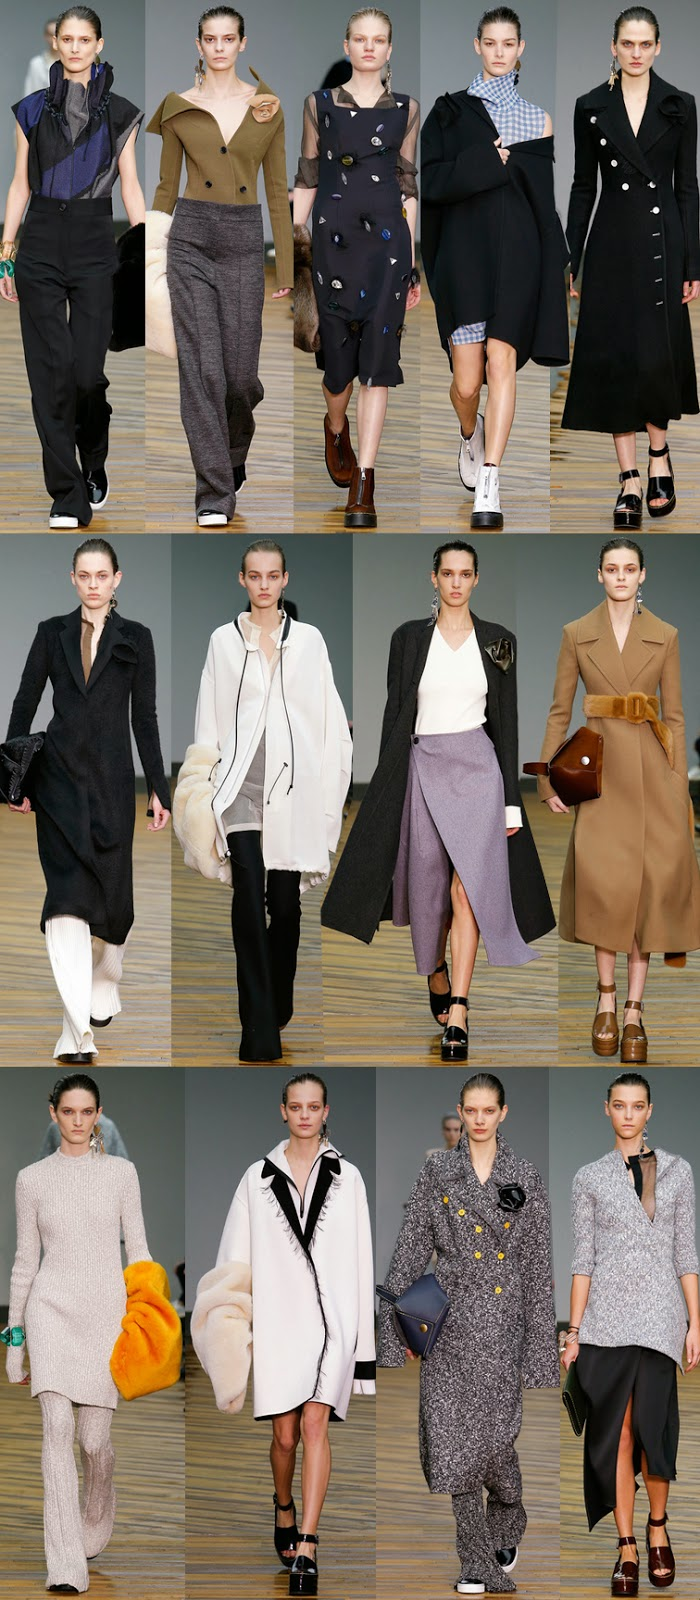 Céline by Phoebe Philo fall winter 2014 runway collection, PFW, FW14, AW14, Paris fashion week